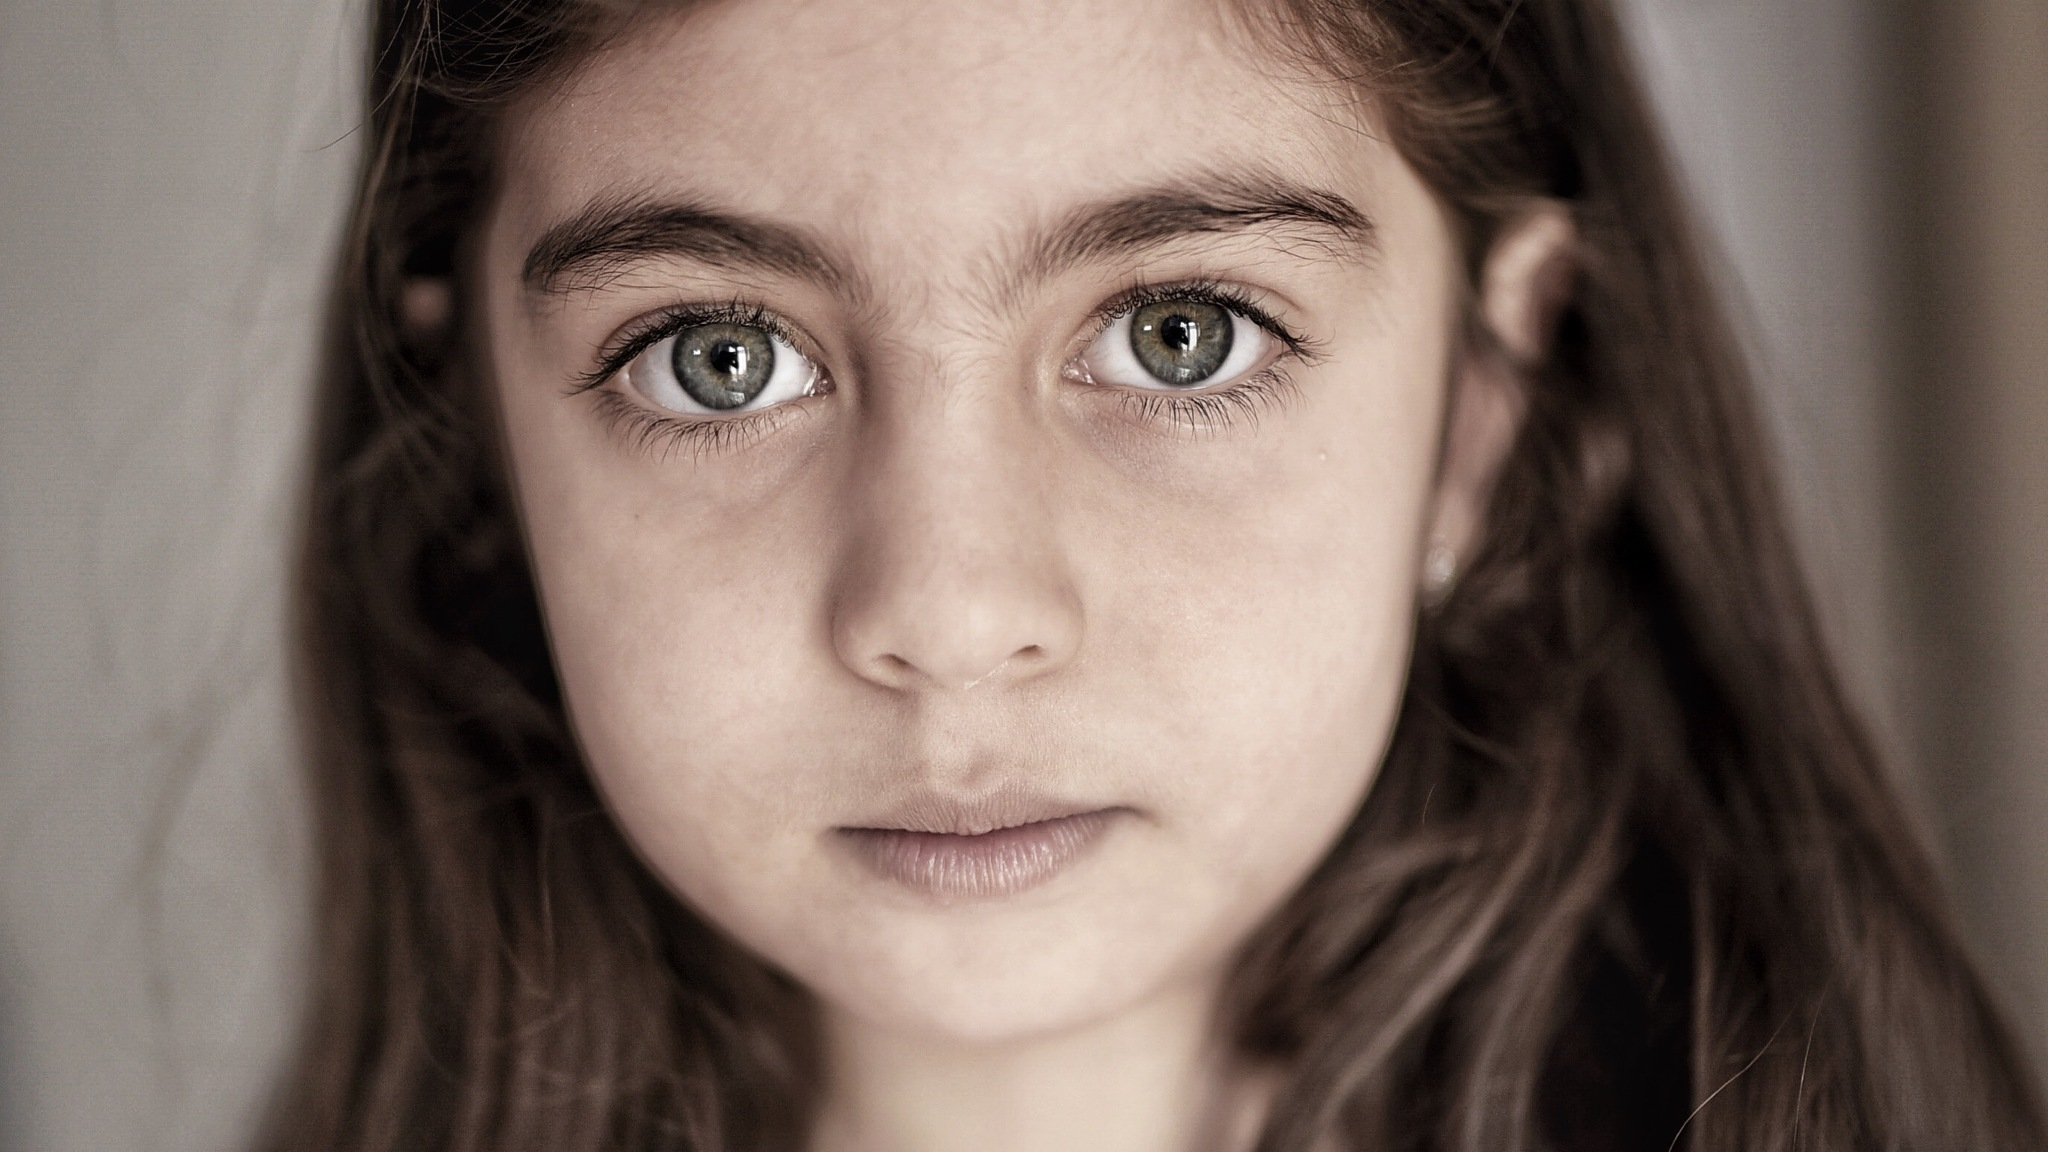 That very look by Emad Mohamadi